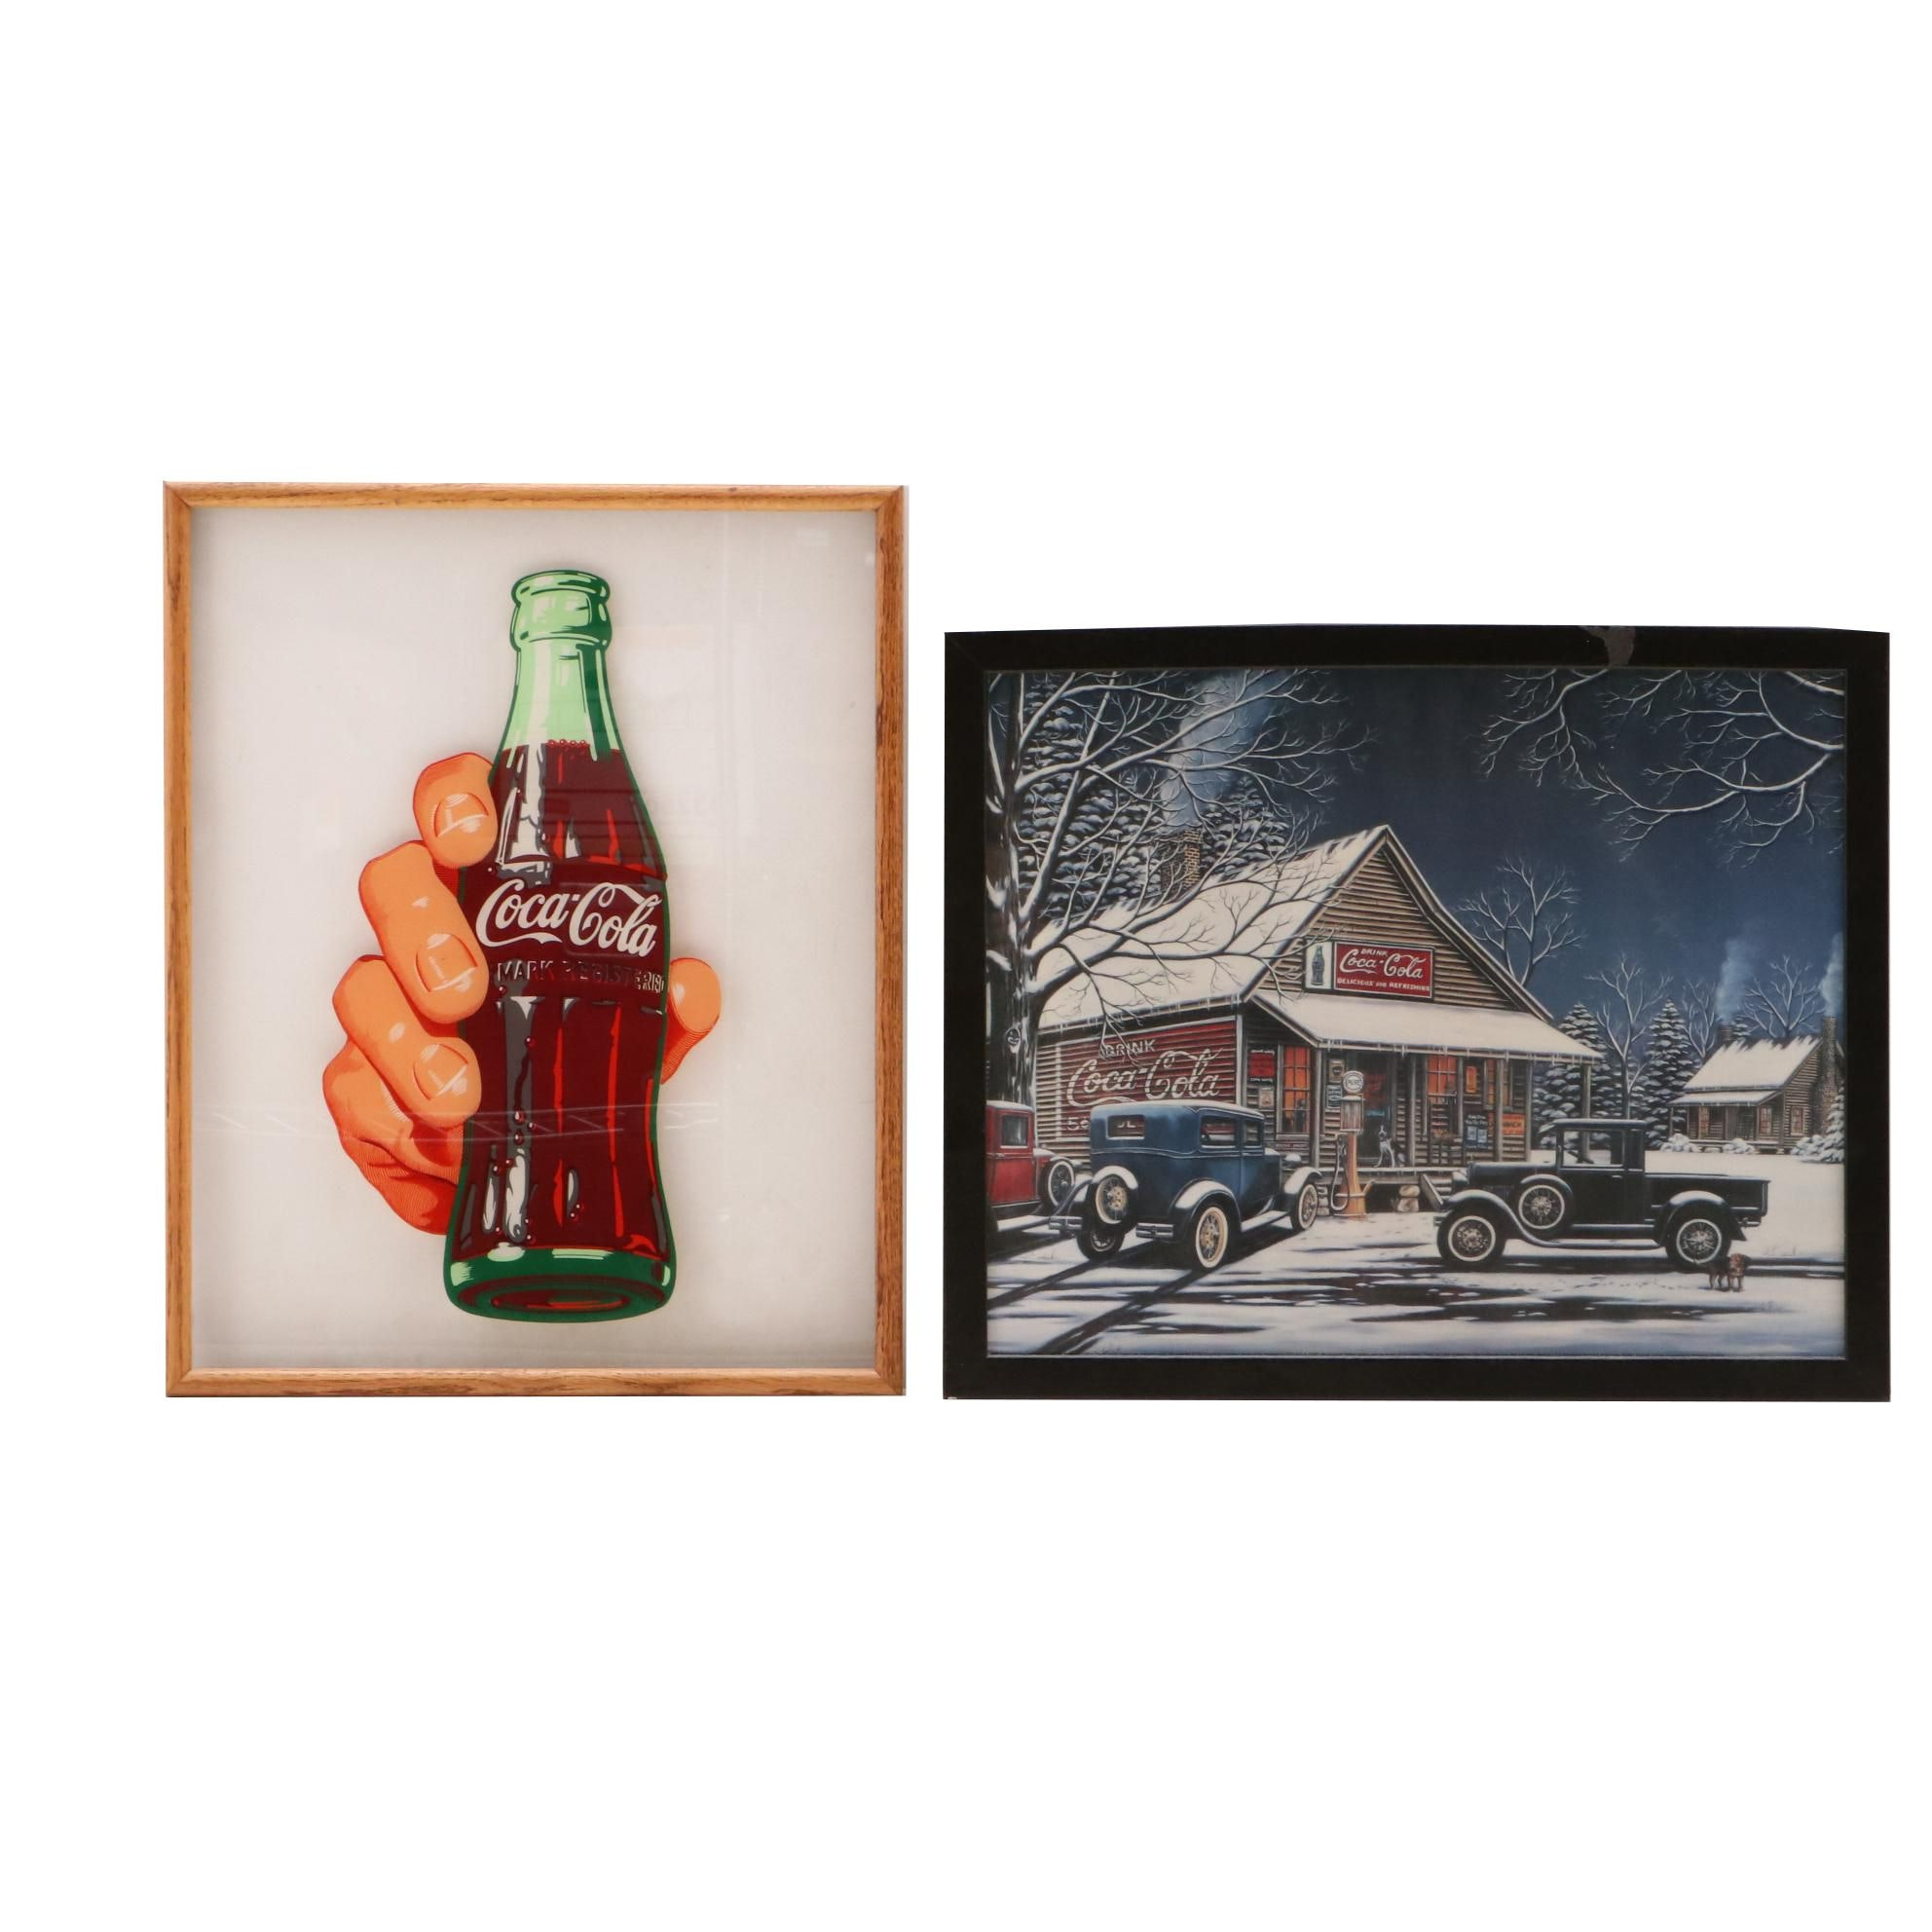 Reverse Printed on Glass and Offset Lithograph Coca-Cola Prints